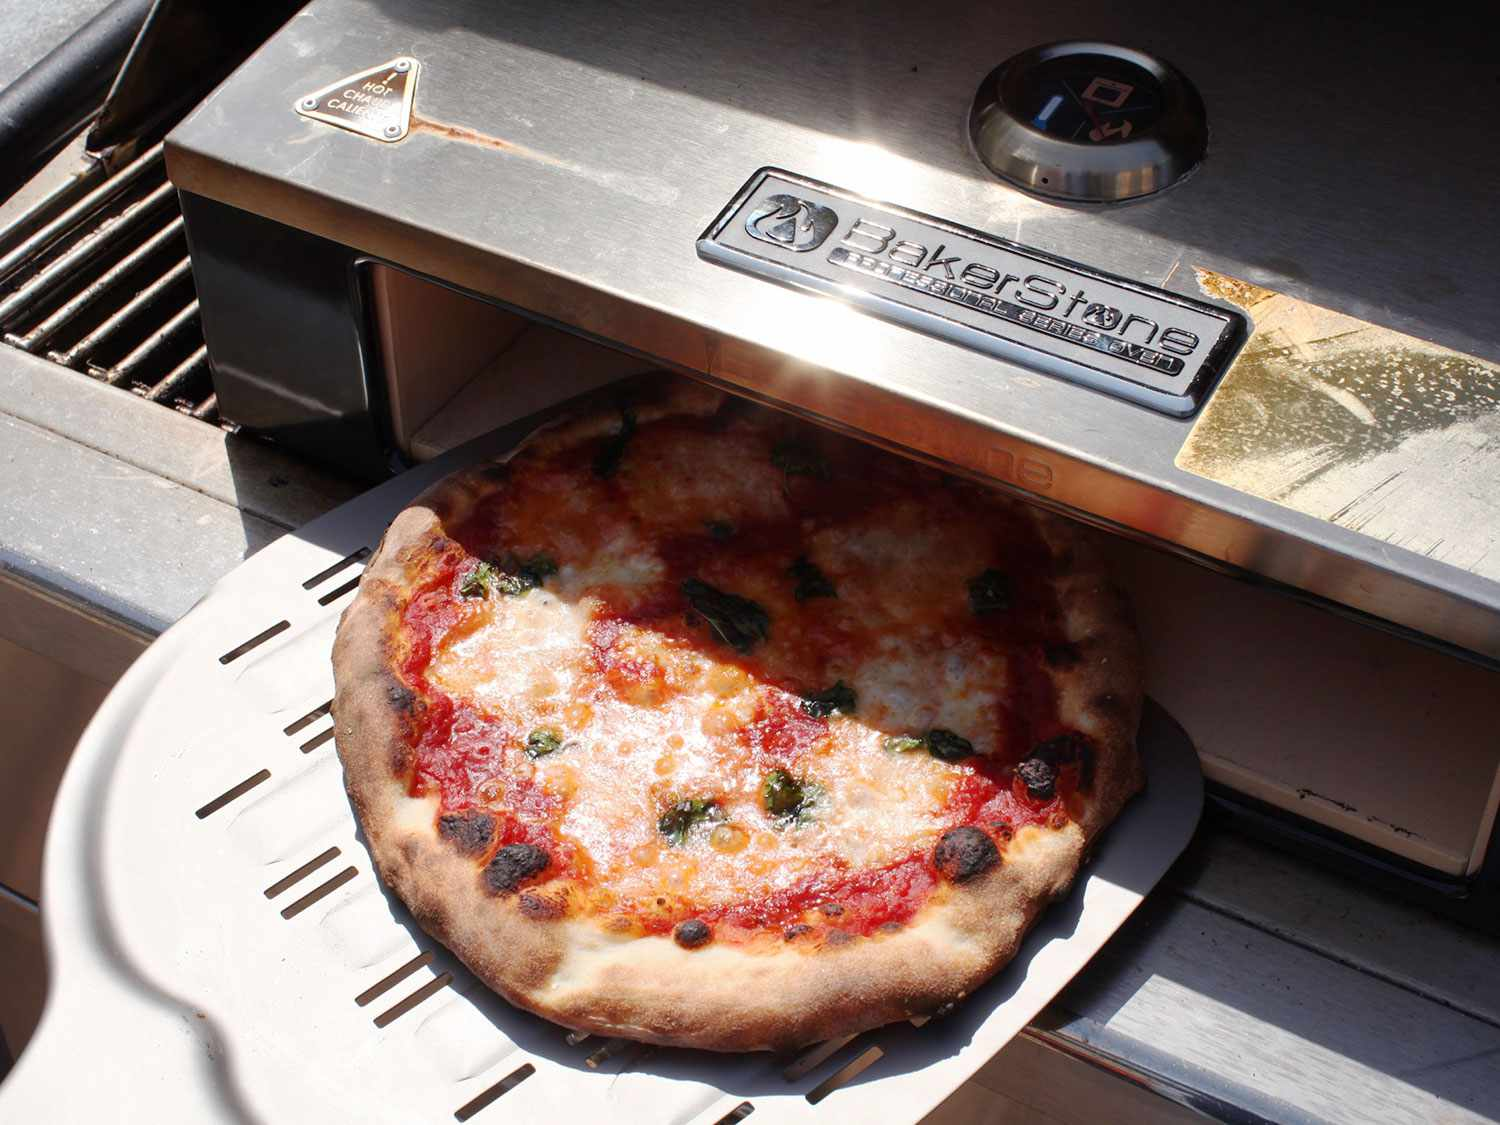 Testing cheese pizza in an BakerStone Box pizza oven